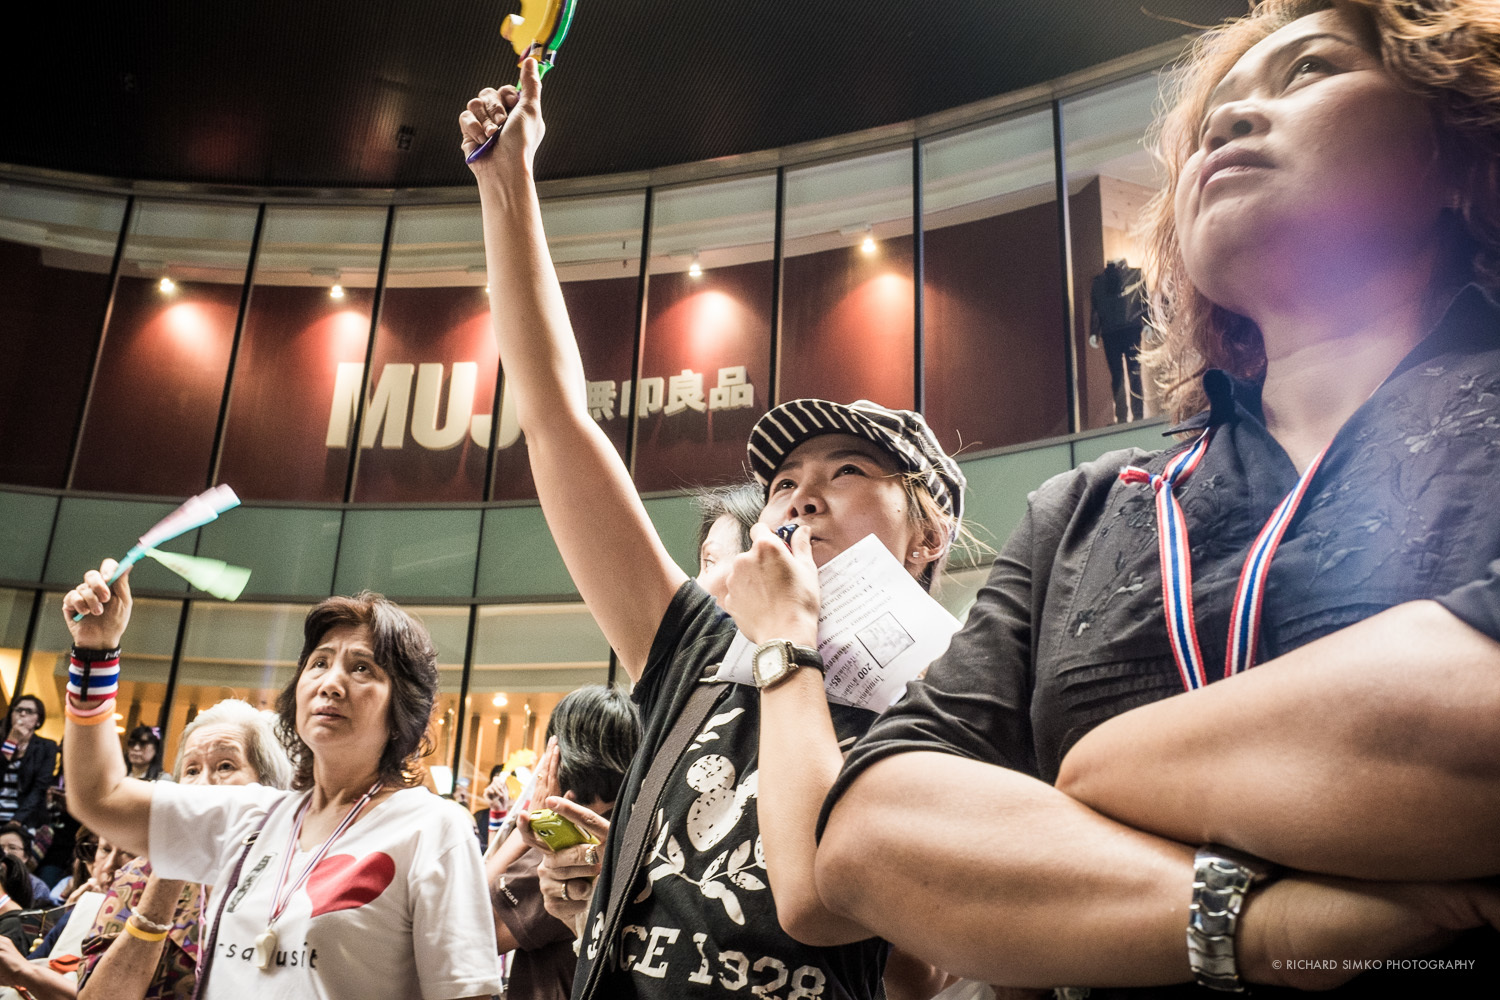 Protesters cheering at Bangkok's Silom district protest.